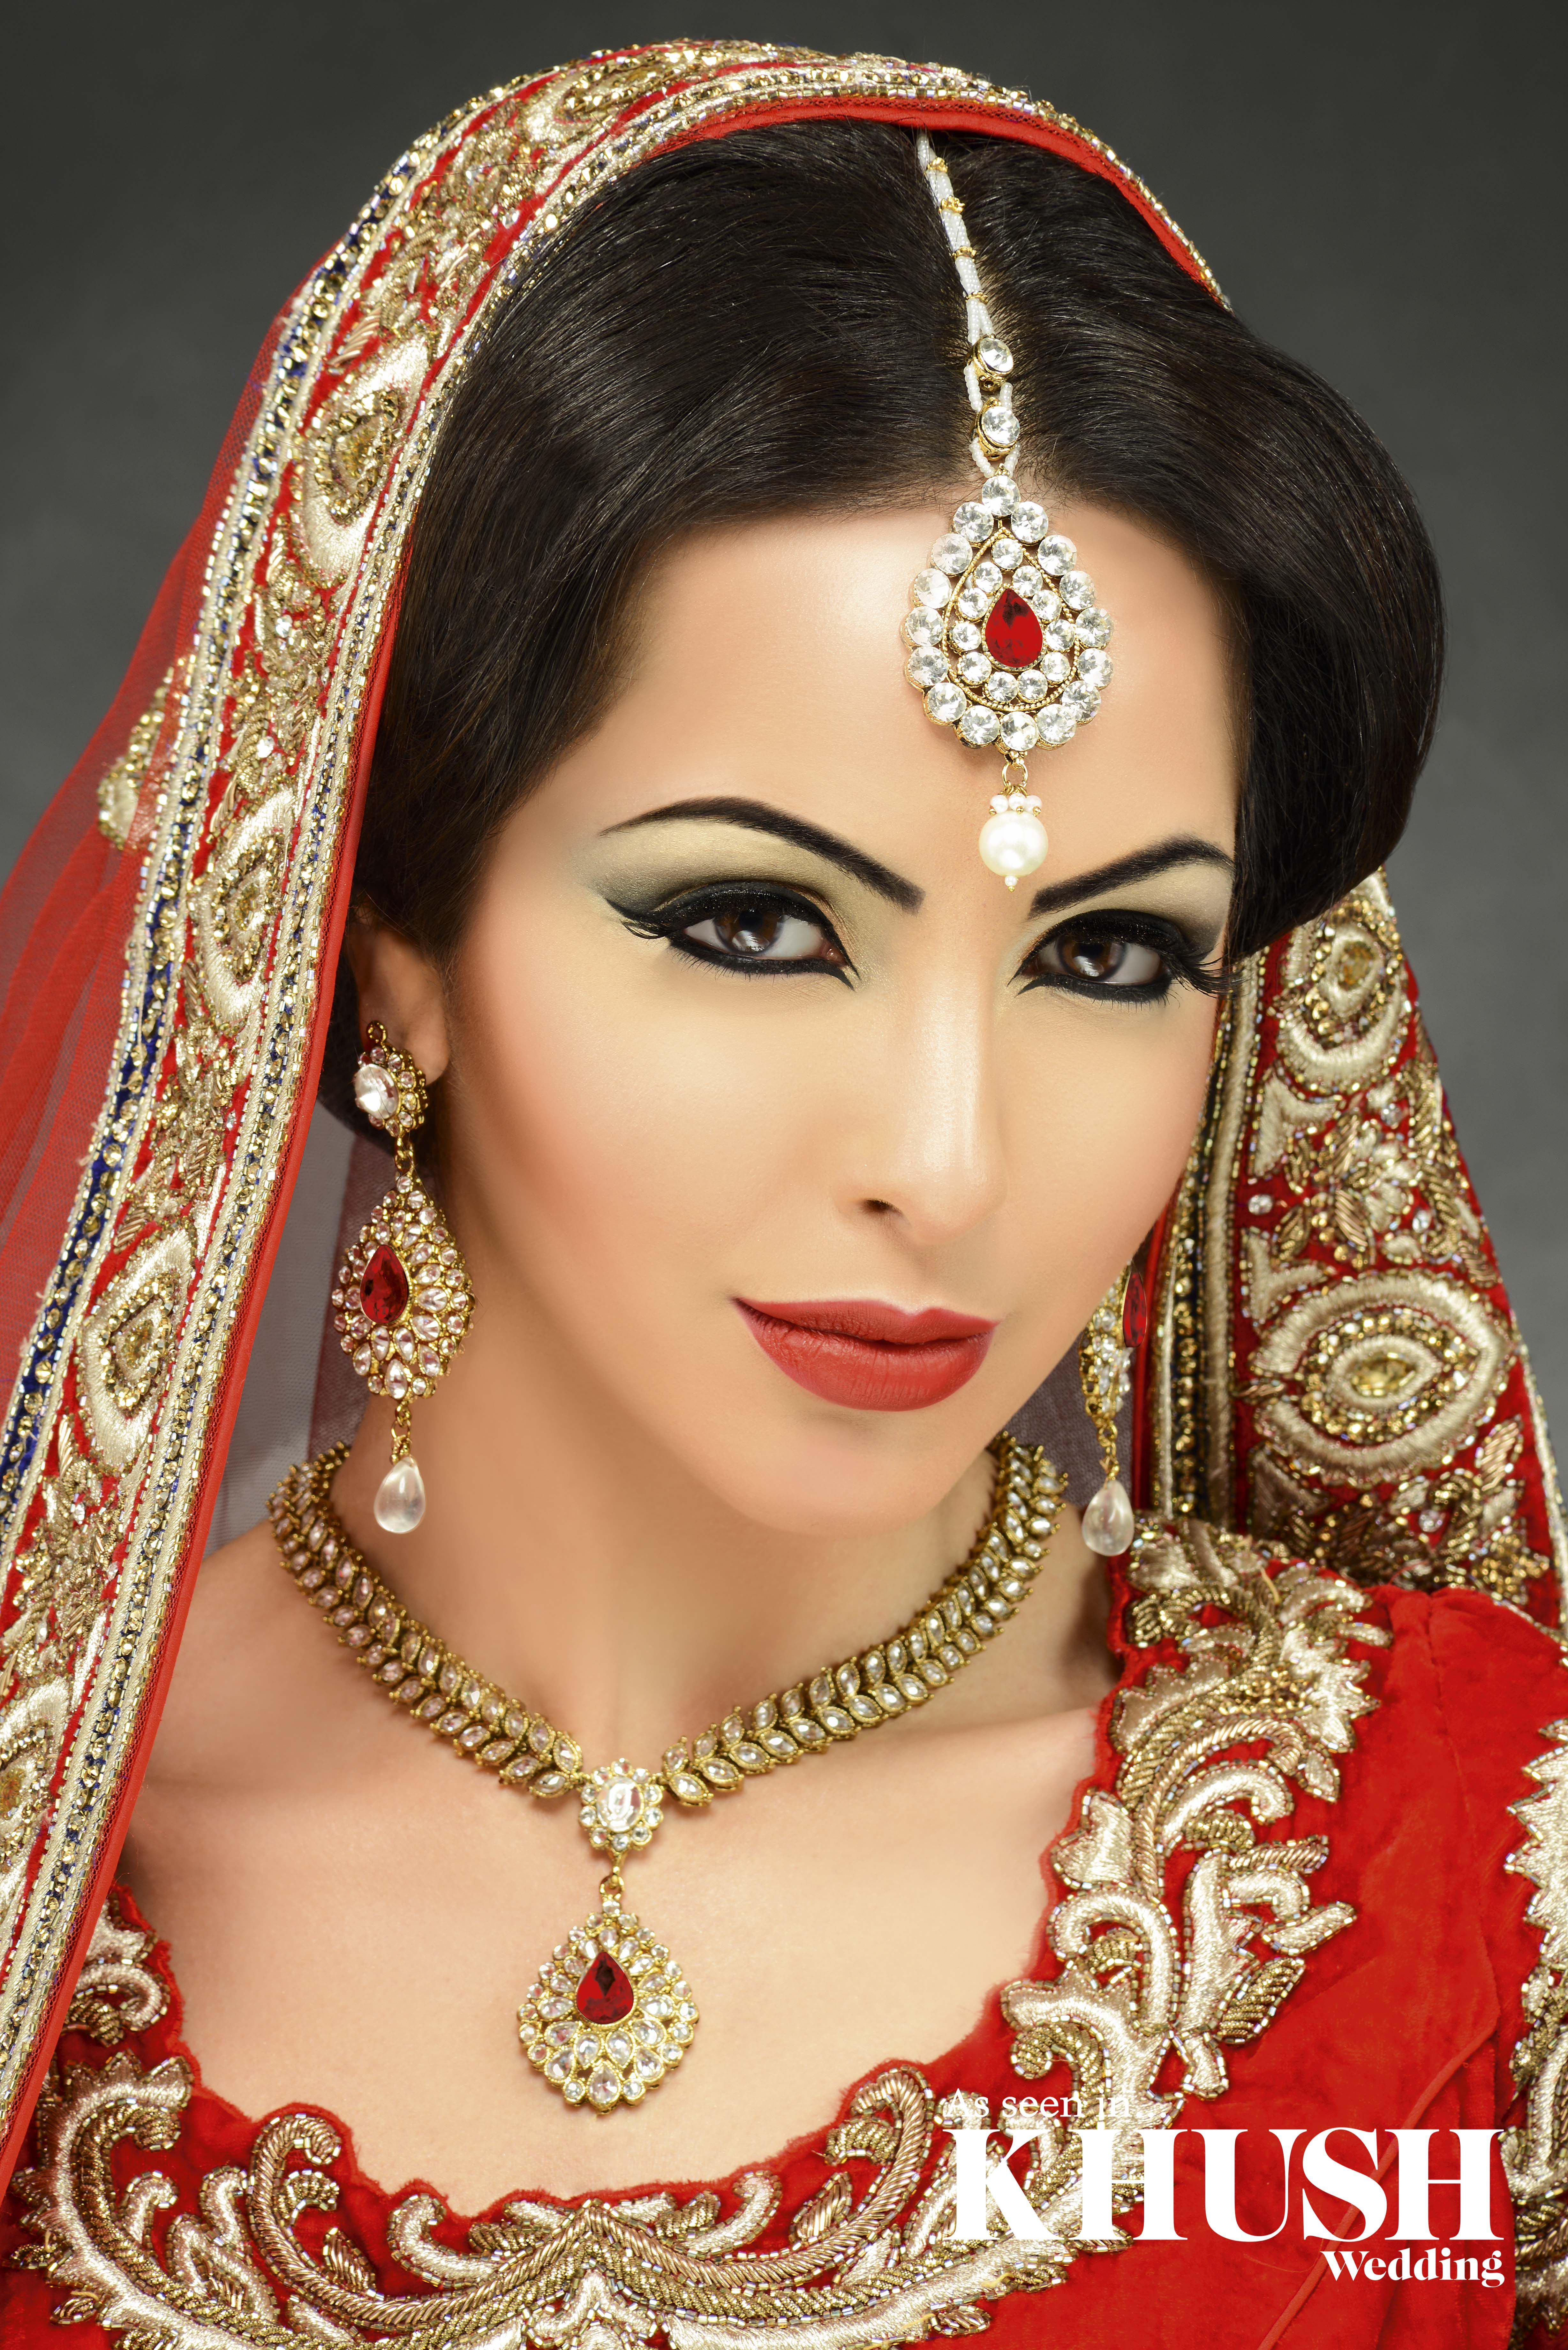 majestic bridal beauty by rumina begum t: +44(0)7949 761 819 e